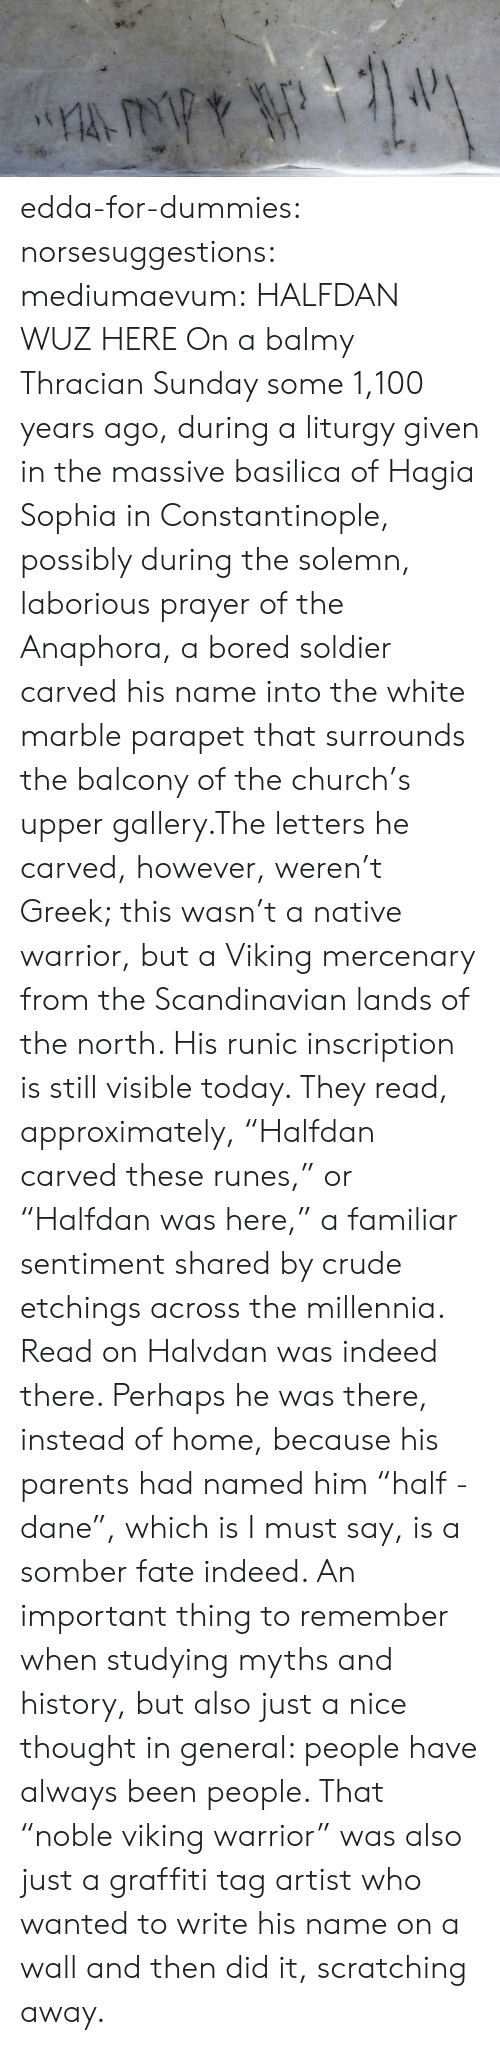 """Wuz: edda-for-dummies: norsesuggestions:  mediumaevum:  HALFDAN WUZ HERE On a balmy Thracian Sunday some 1,100 years ago, during a liturgy given in the massive basilica of Hagia Sophia in Constantinople, possibly during the solemn, laborious prayer of the Anaphora, a bored soldier carved his name into the white marble parapet that surrounds the balcony of the church's upper gallery.The letters he carved, however, weren't Greek; this wasn't a native warrior, but a Viking mercenary from the Scandinavian lands of the north. His runic inscription is still visible today. They read, approximately, """"Halfdan carved these runes,"""" or """"Halfdan was here,"""" a familiar sentiment shared by crude etchings across the millennia. Read on  Halvdan was indeed there. Perhaps he was there, instead of home, because his parents had named him """"half - dane"""", which is I must say, is a somber fate indeed.   An important thing to remember when studying myths and history, but also just a nice thought in general: people have always been people. That """"noble viking warrior"""" was also just a graffiti tag artist who wanted to write his name on a wall and then did it, scratching away."""